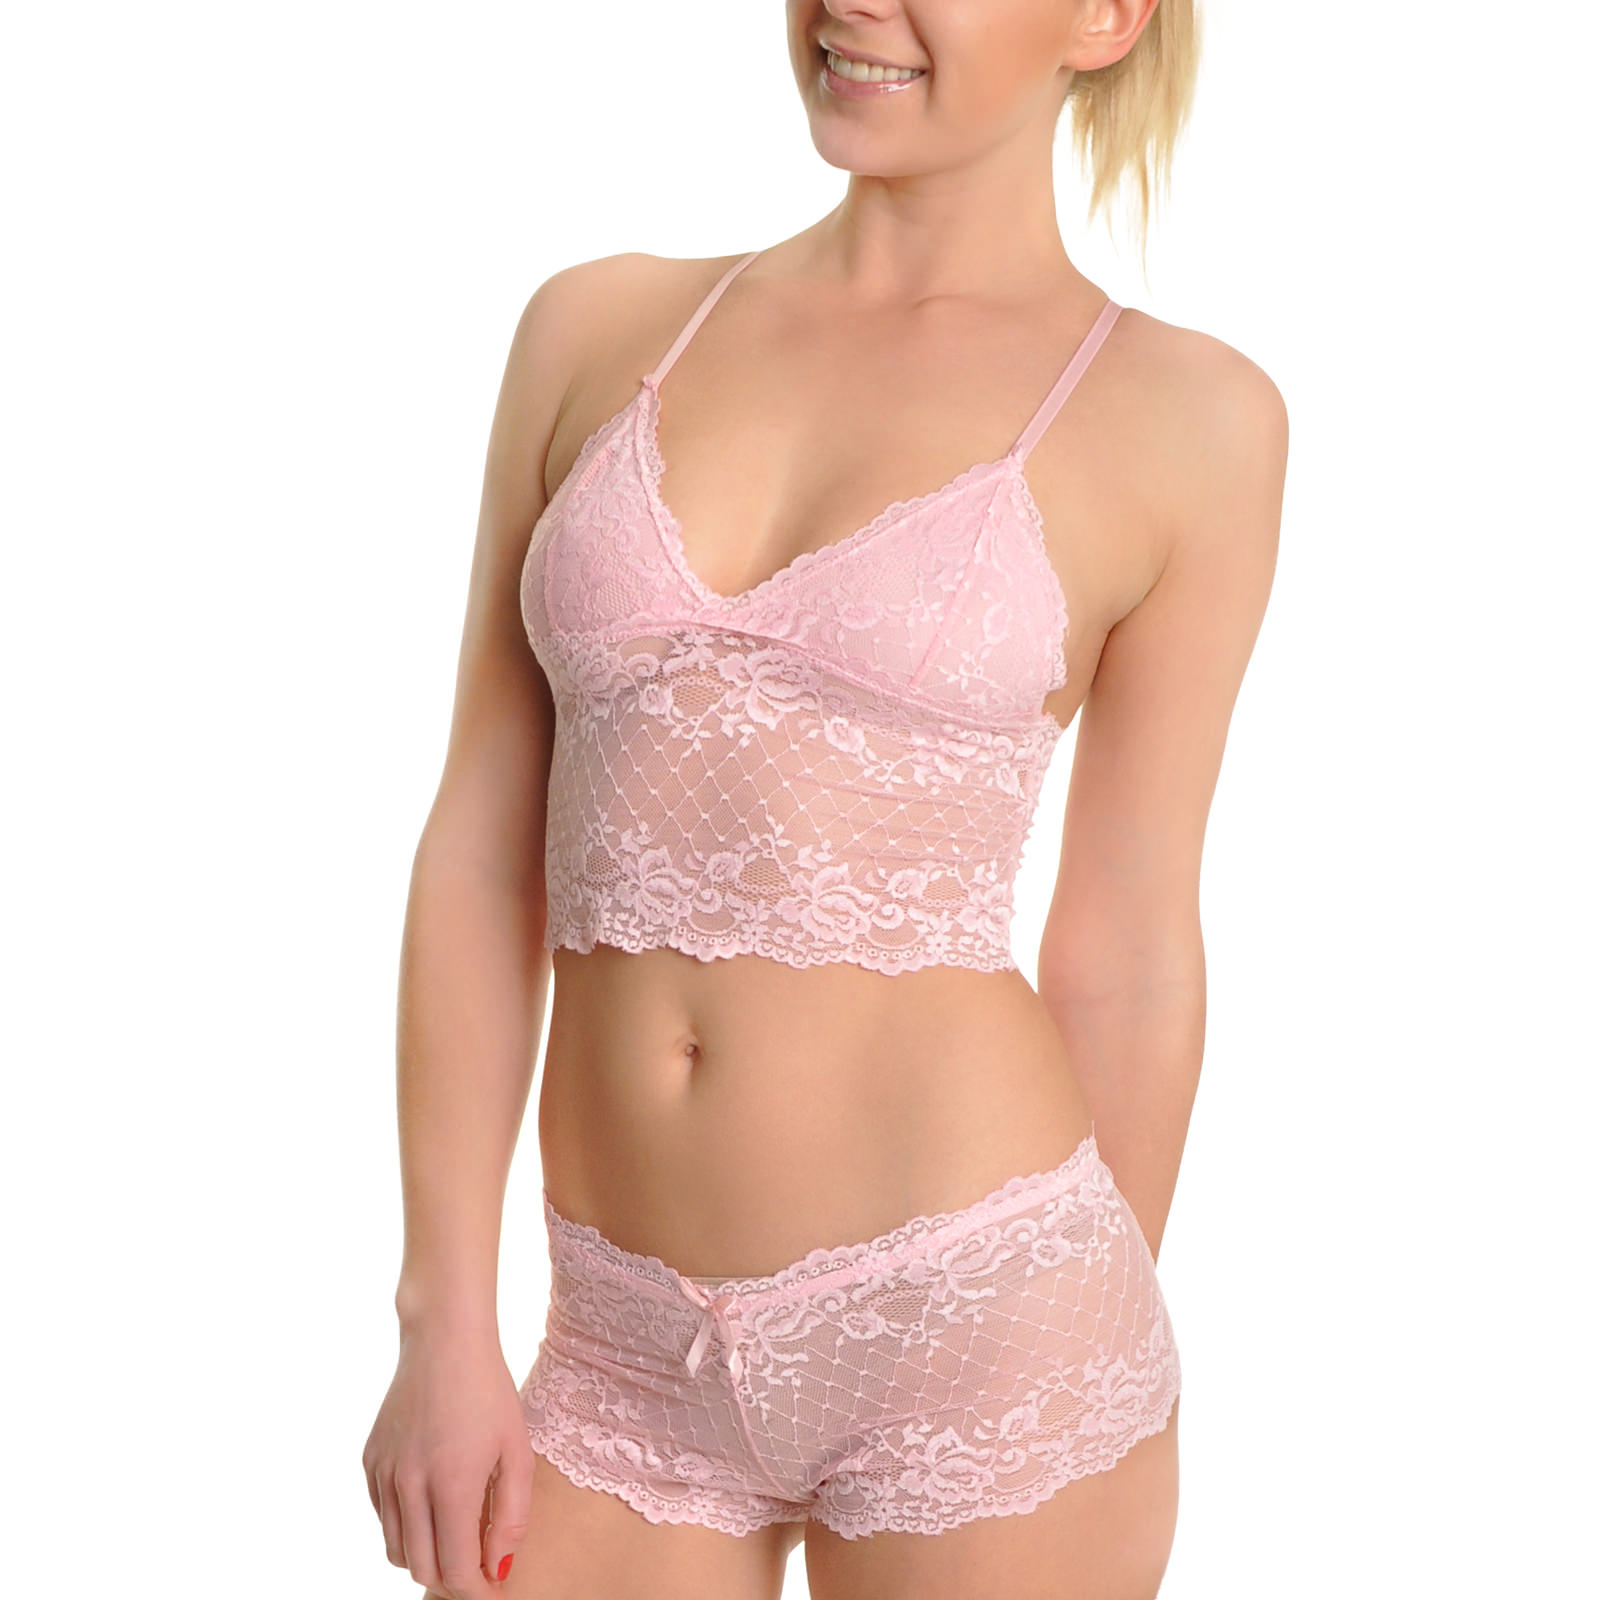 Angelina 2-Set Lace Cami Top and Boxer Shorts Lingerie Set